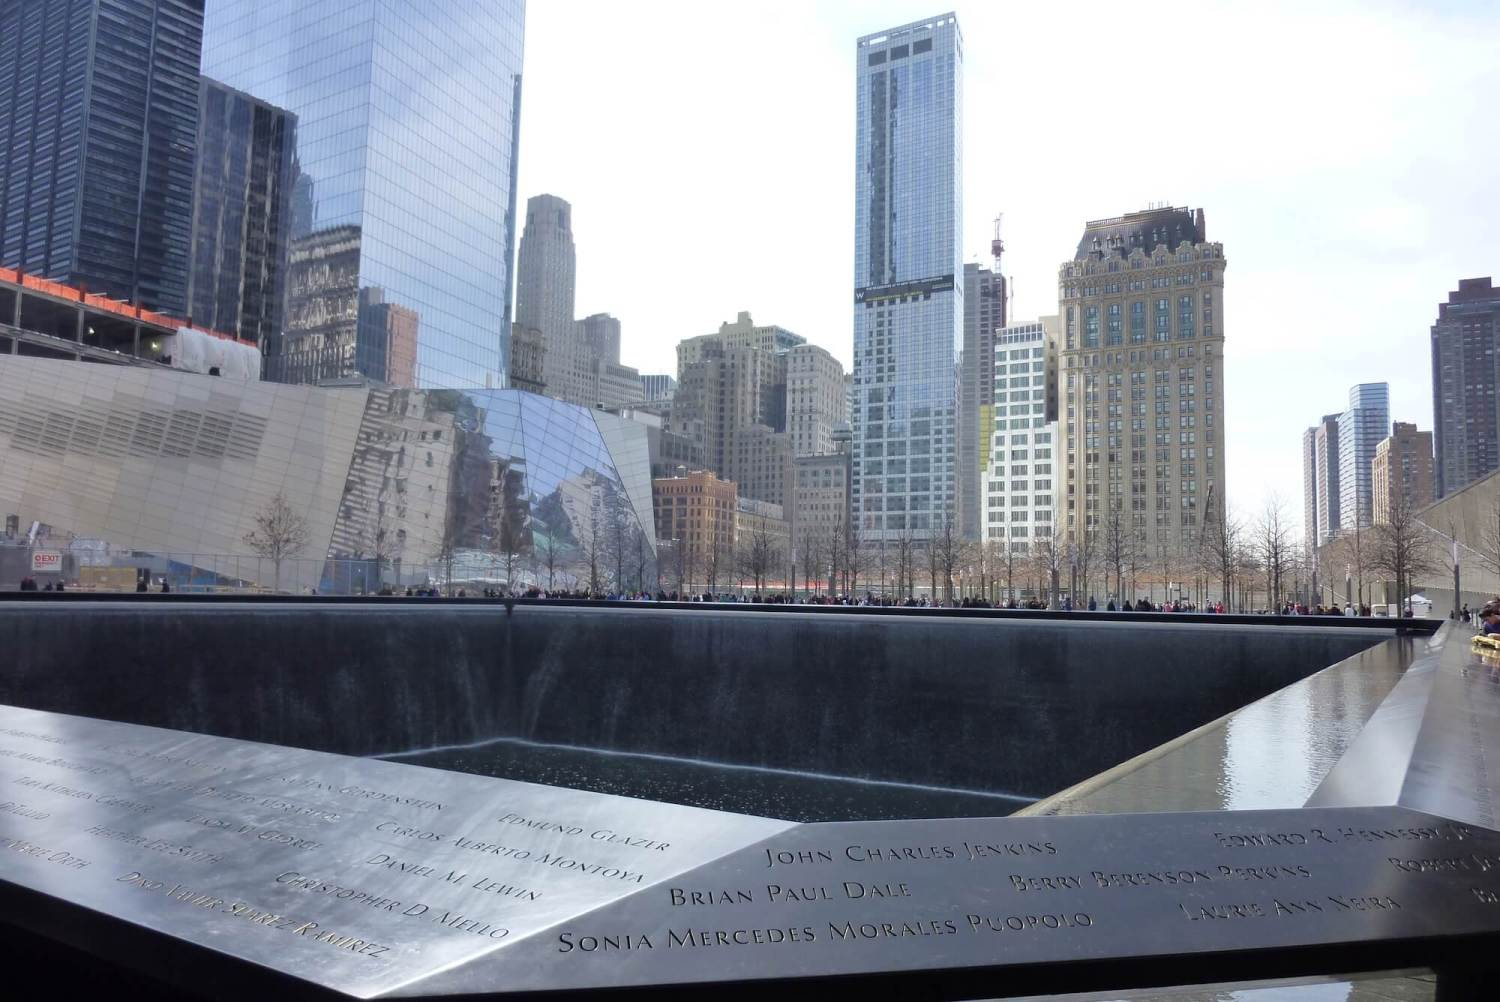 911 memorial, world trade centre memorial